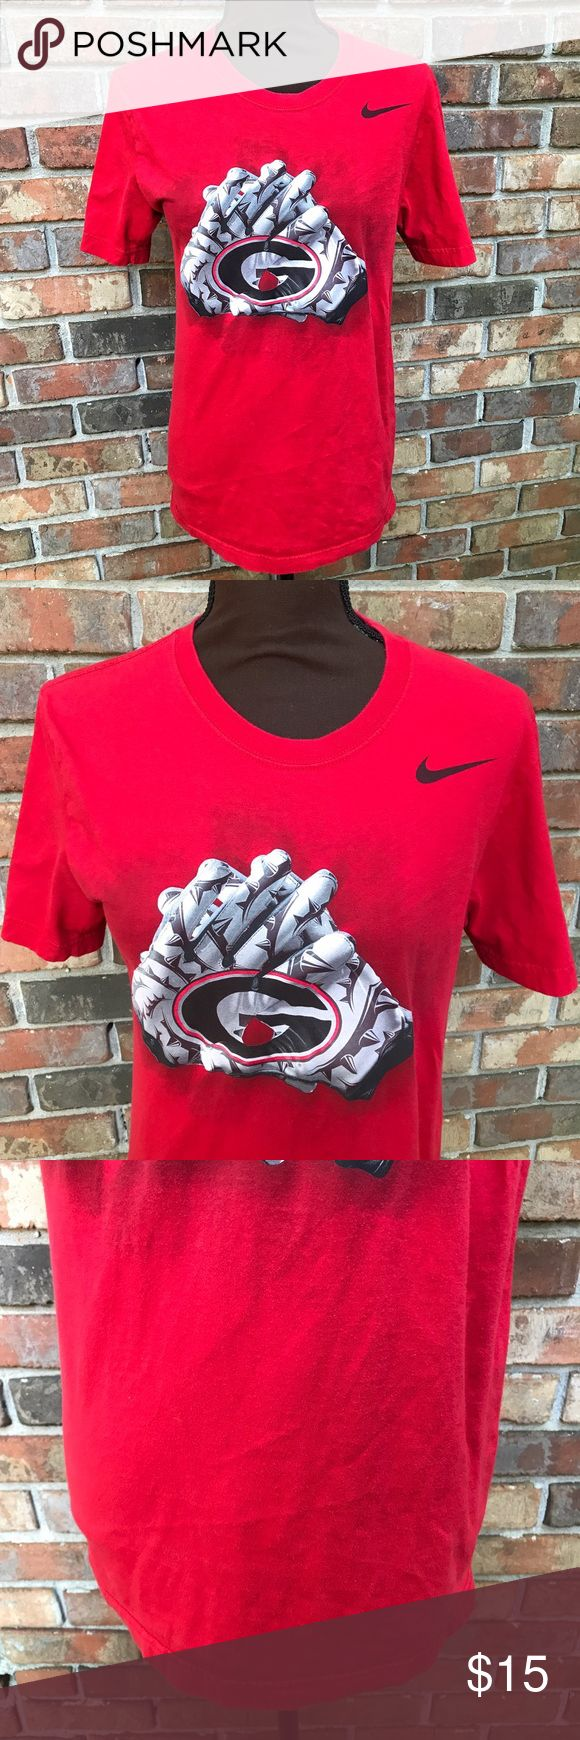 Red Georgia Bulldog Short Sleeve Standard Fit Tee Lightly Used   Great Condition   All Red   Georgia Bulldog Logo & Gloves in Middle   Small Patch Missing   Normal Signs of Wear   Standard Fit   Short Sleeve   Nike Logo on Top Right Front   Black Georgie Lettering on Right Sleeve   Length: 16.5ins   Bust: 36ins   Sleeve Length: 9ins   100% Cotton   Nike Tops Tees - Short Sleeve